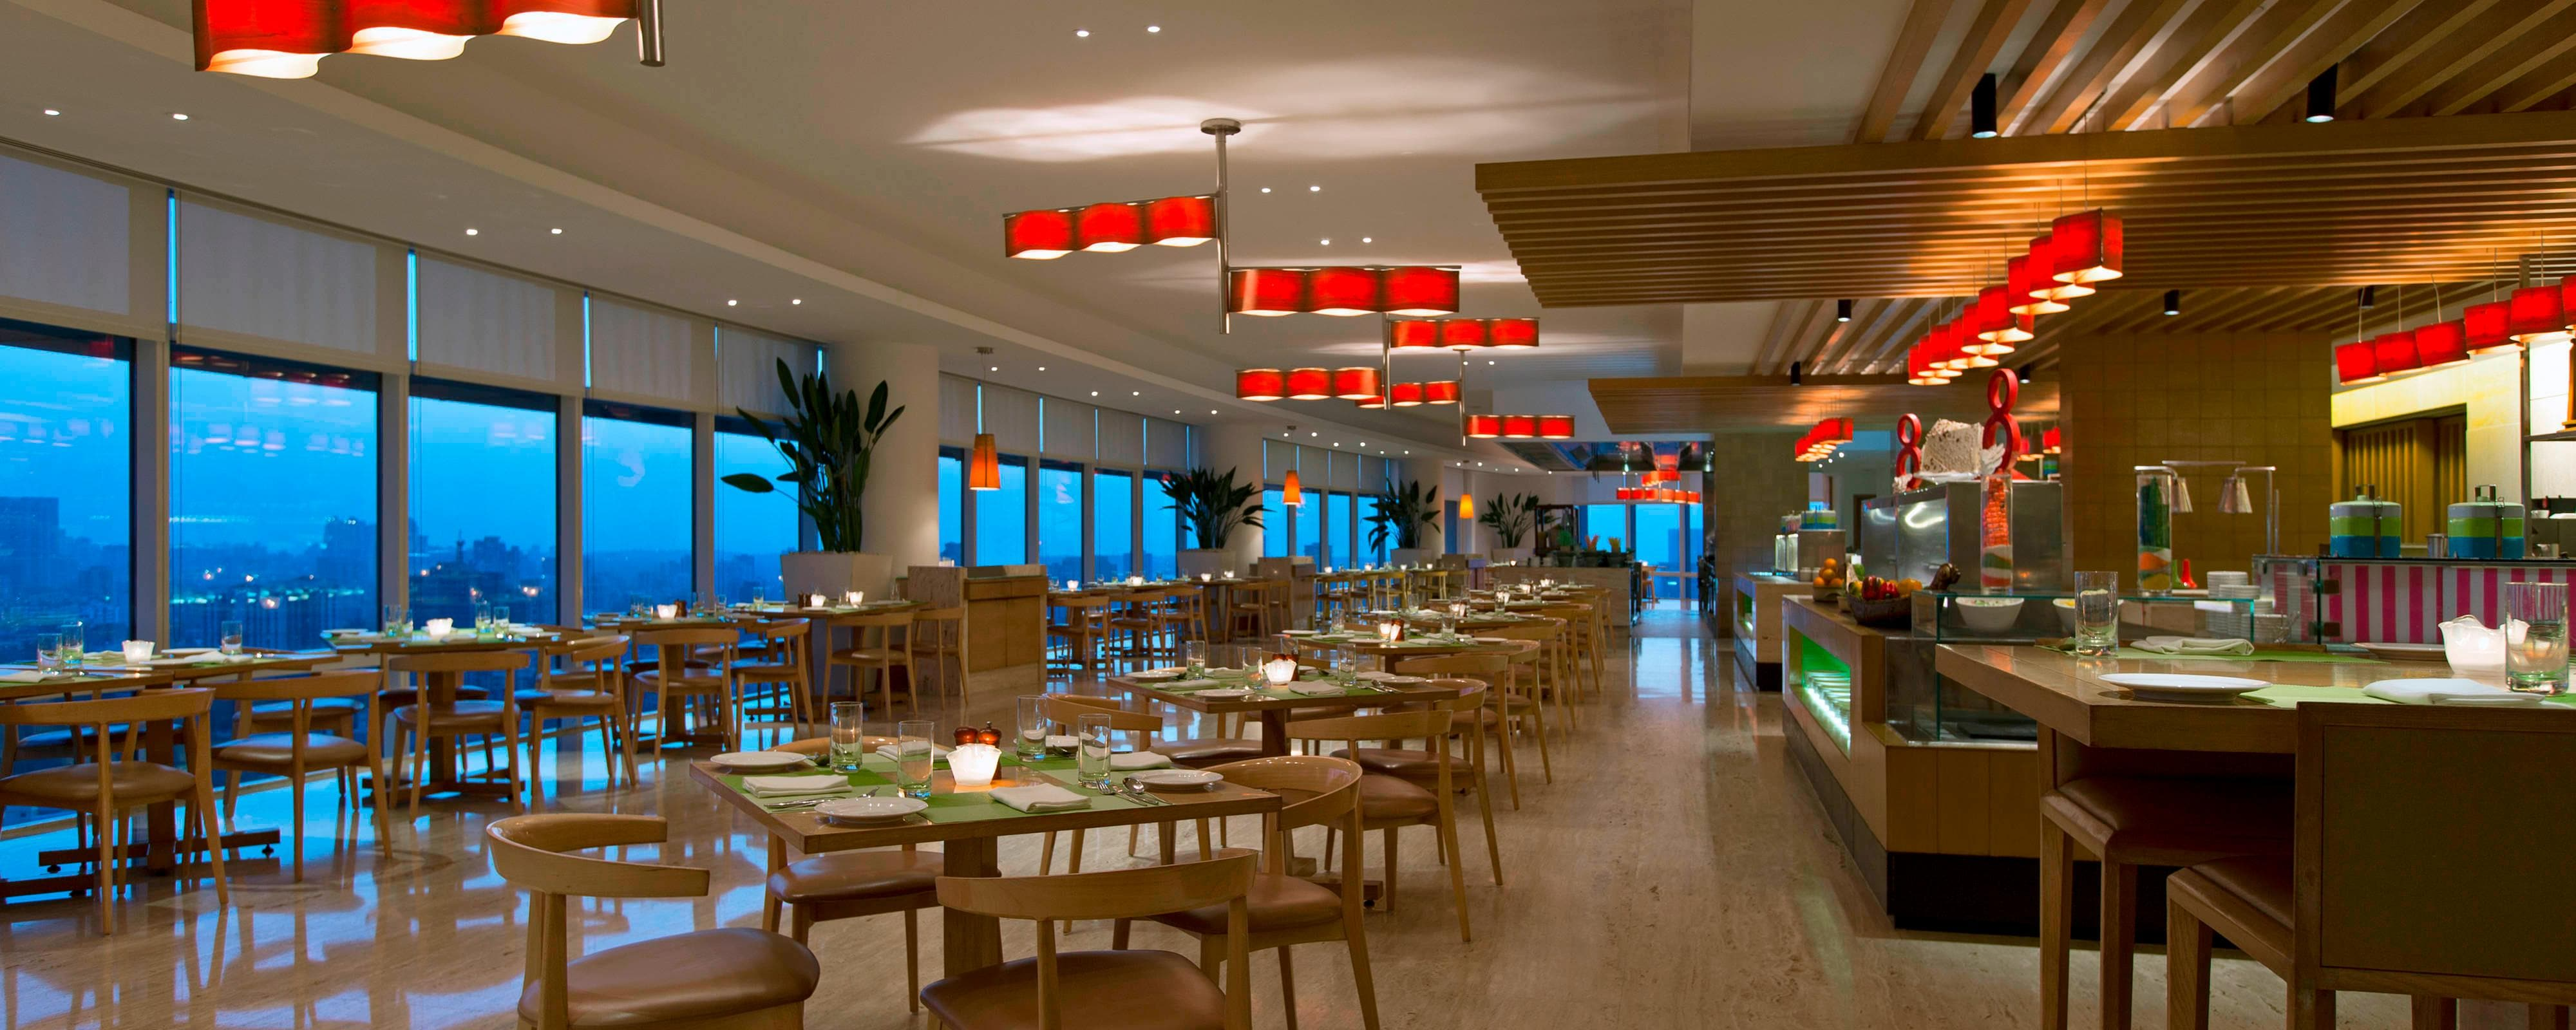 Mumbai hotel restaurants and lounges | The Westin Mumbai Garden City